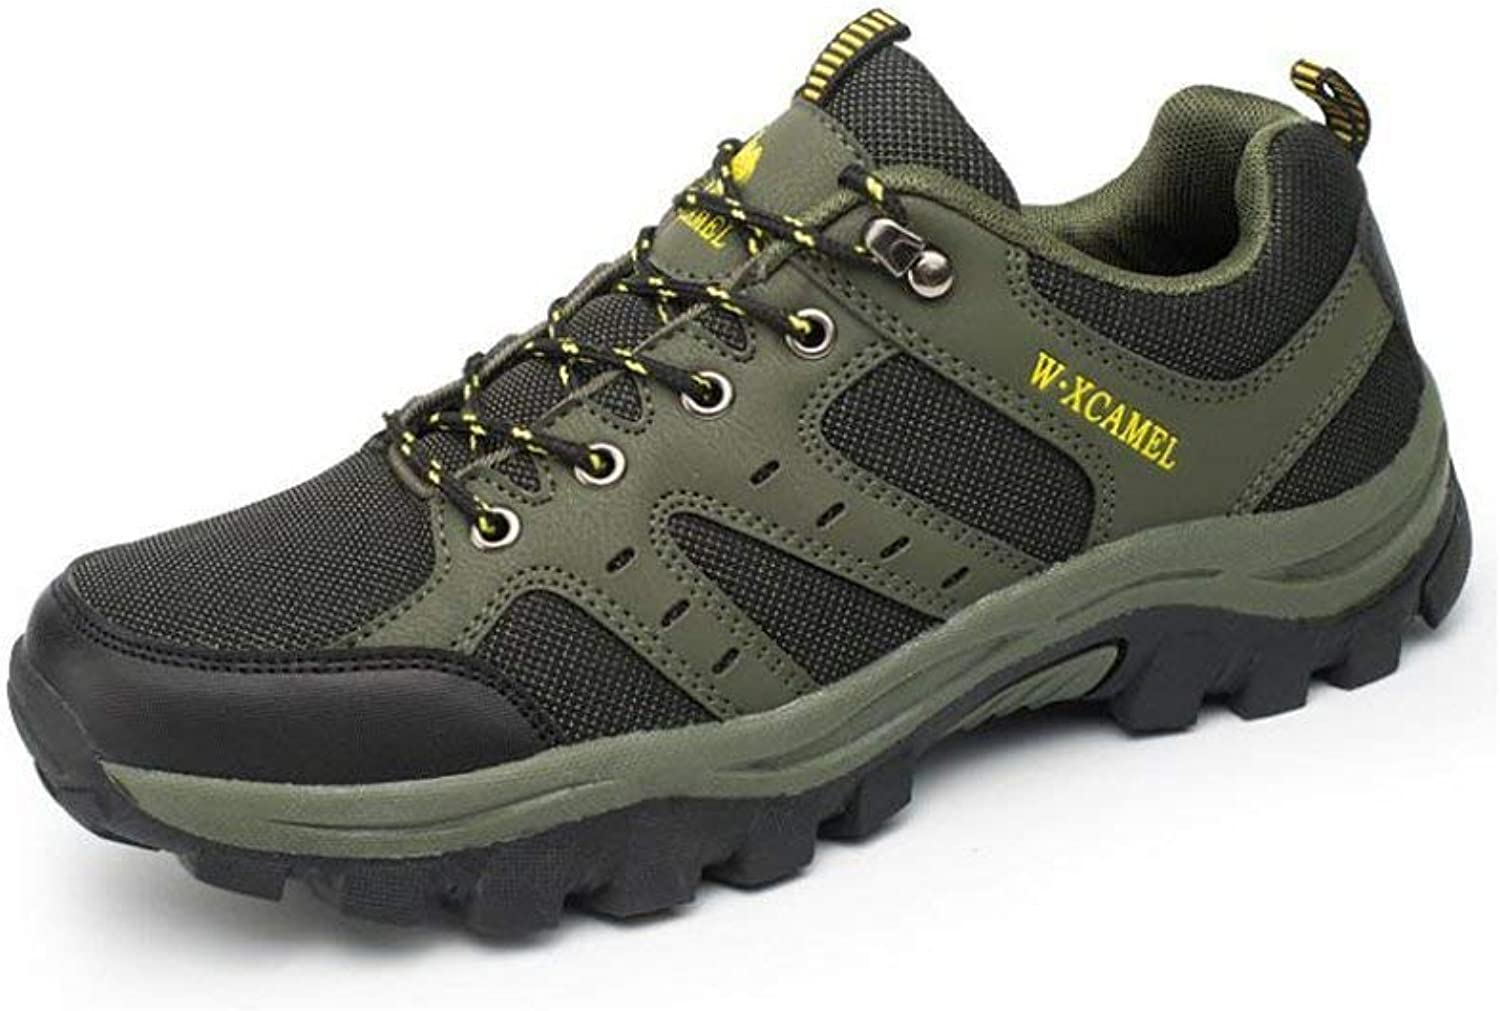 FuweiEncore Walking shoes, Men's shoes - Lightweight shoes, Mesh lining shoes, Heel & Toe bumpers - For hiking, hiking, travel this summer, C, 41 (color   As shown, Size   One size)